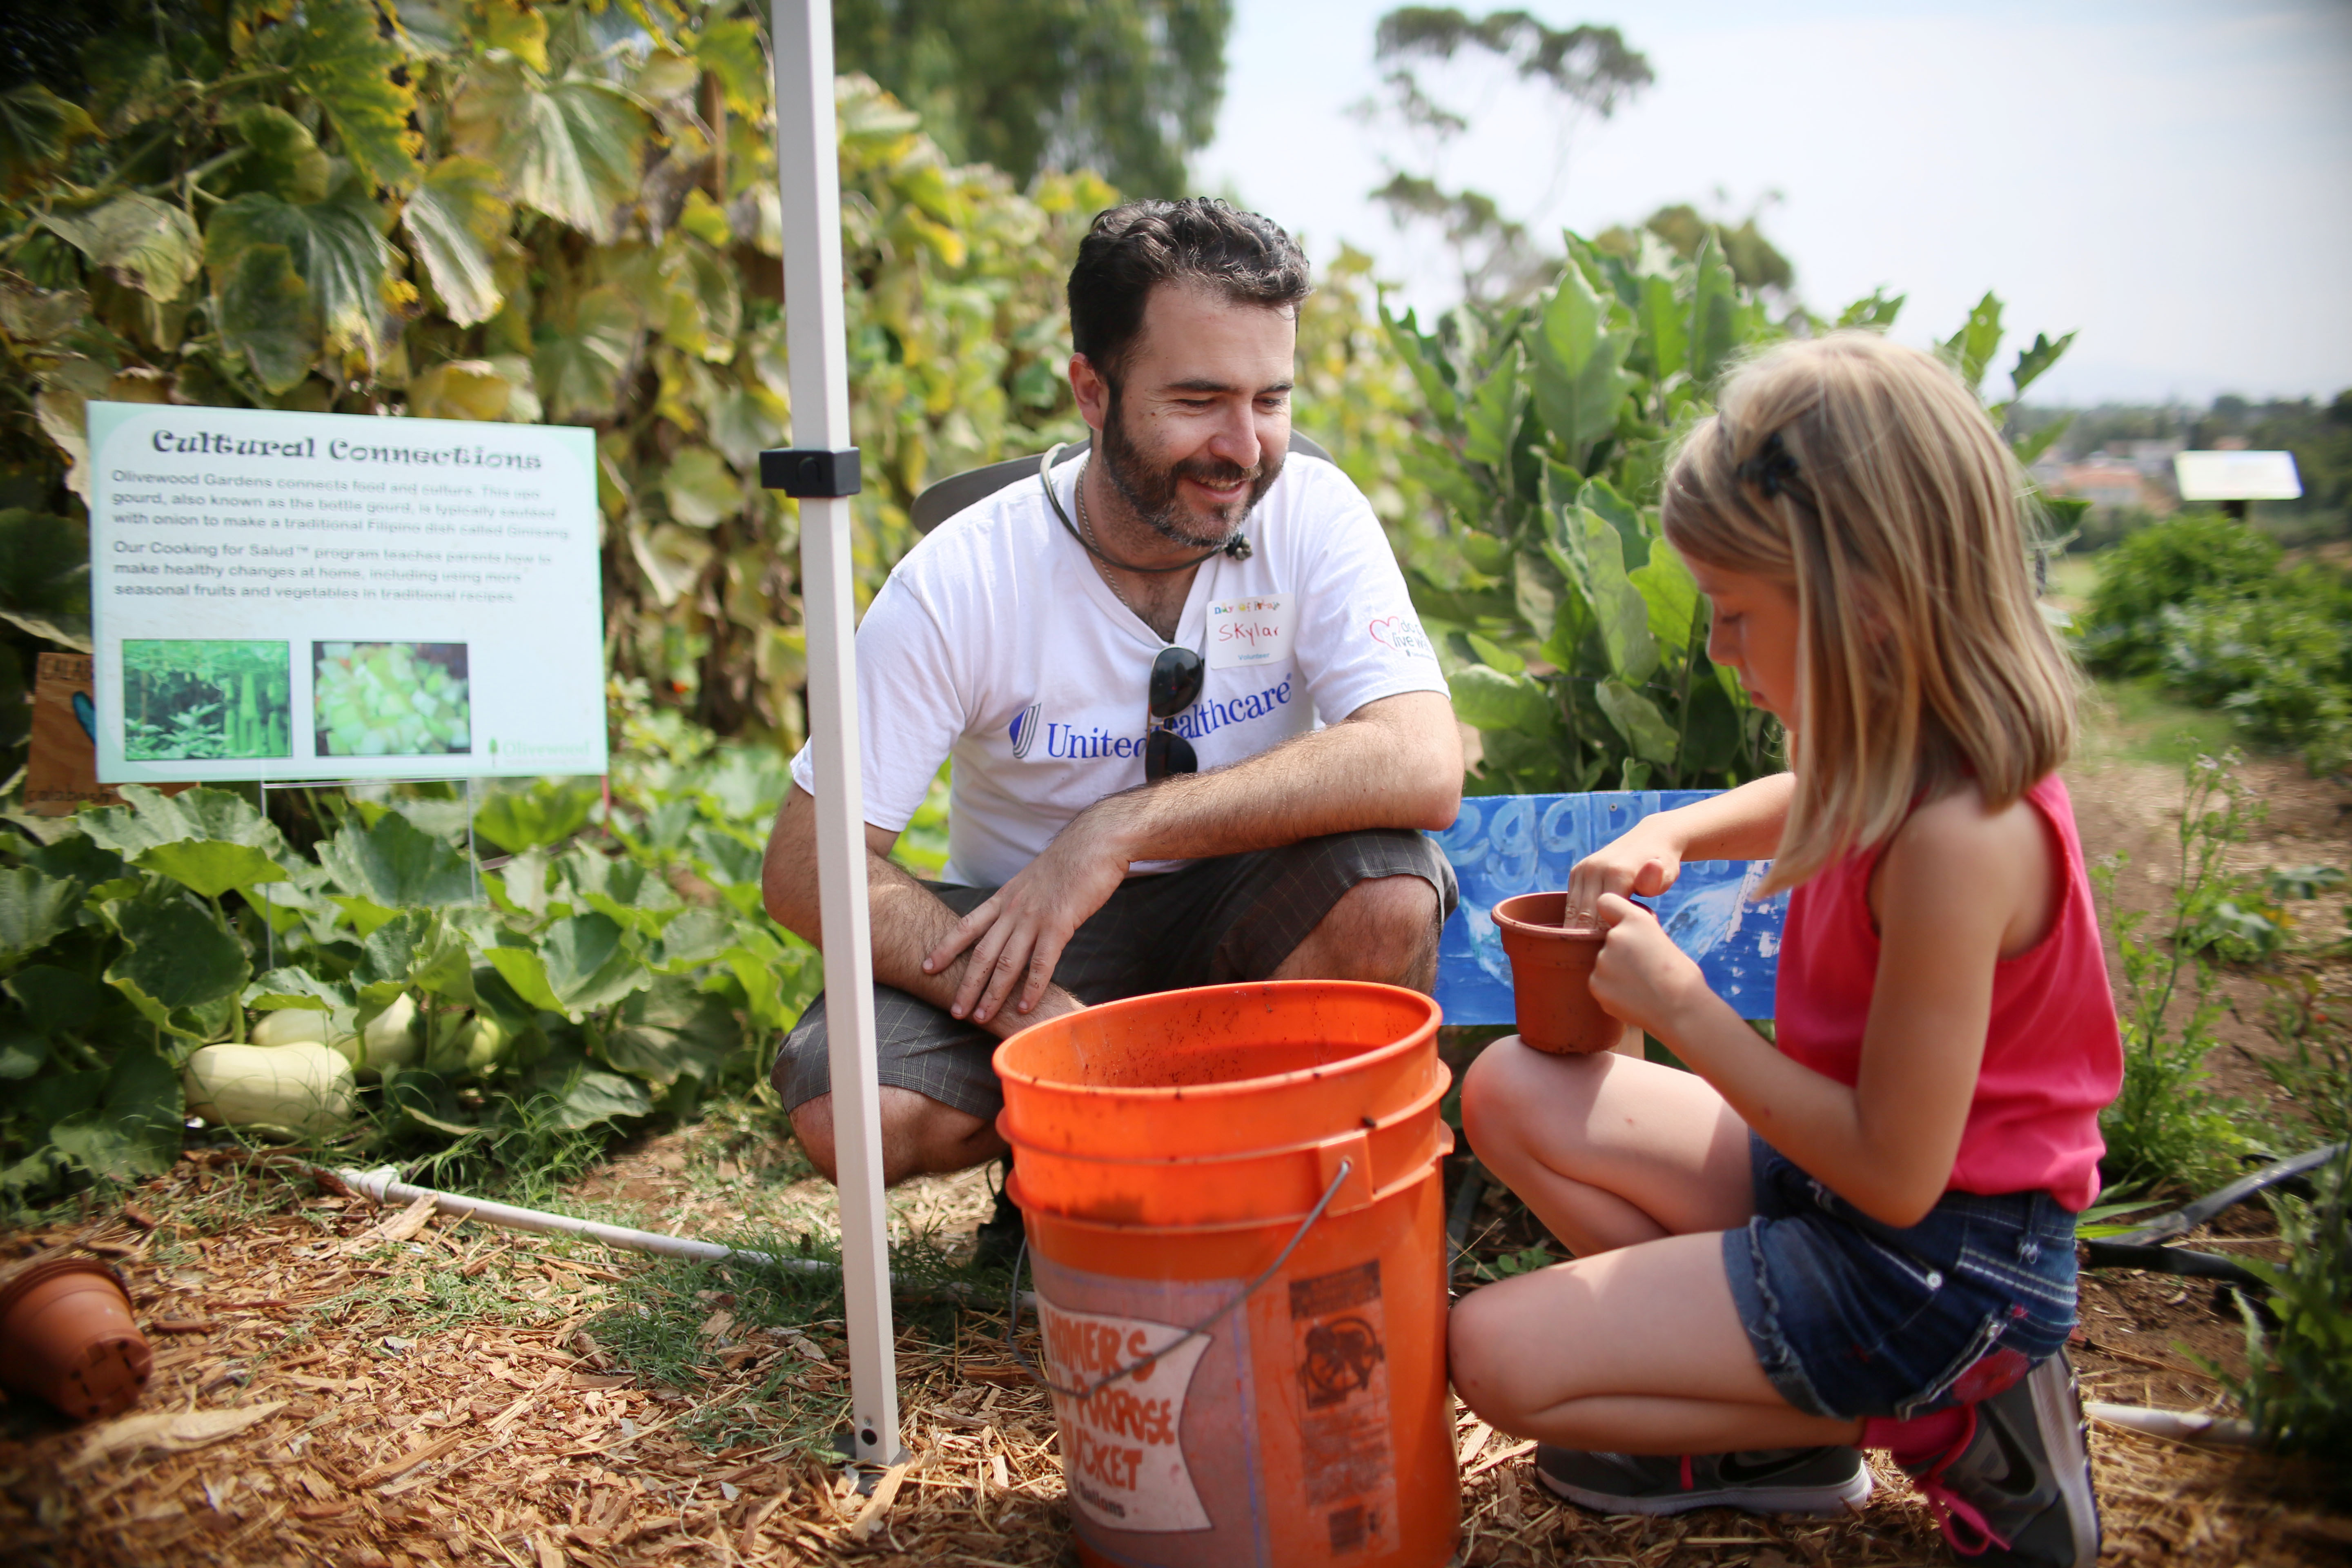 UnitedHealthcare volunteer Skylar Hayes assists Anais with a potted plant activity today at the annual Olivewood Gardens and Learning Center Day of Play in National City, Calif. The Day of Play is a free community festival with hands-on activities related to gardening, physical activity, healthy foods and nutrition for more than 400 San Diego County adults and children. (Photo credit: Sandy Huffaker)